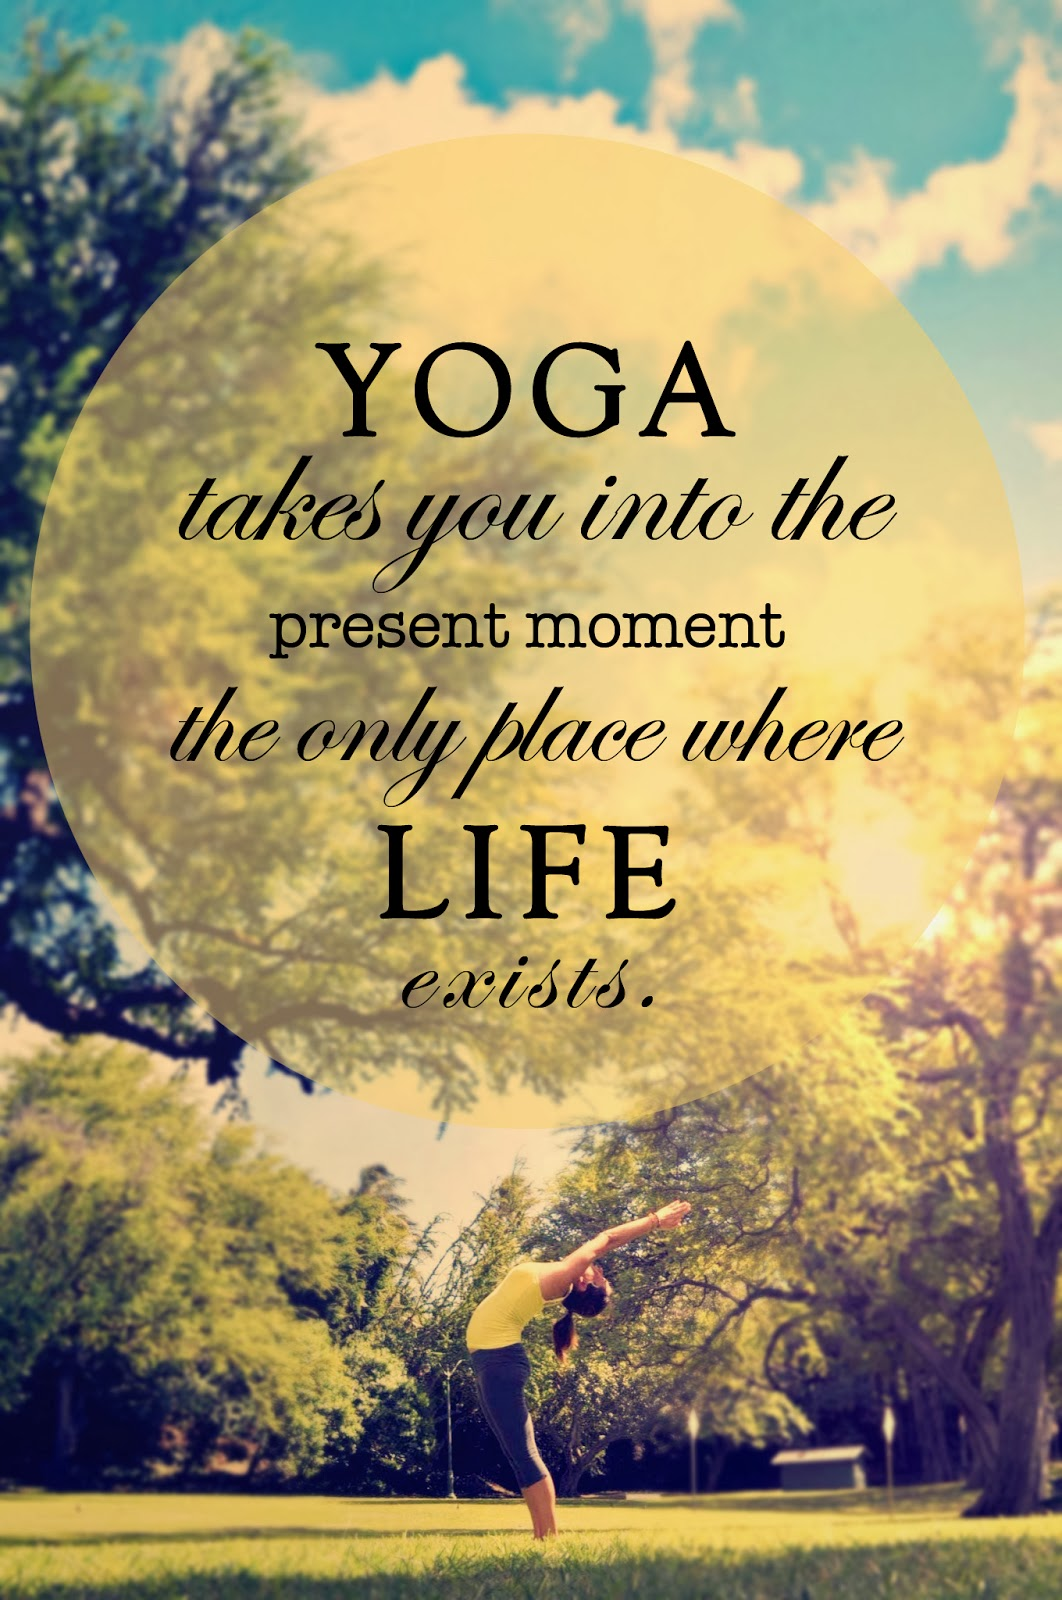 yoga quotes inspiration - photo #20